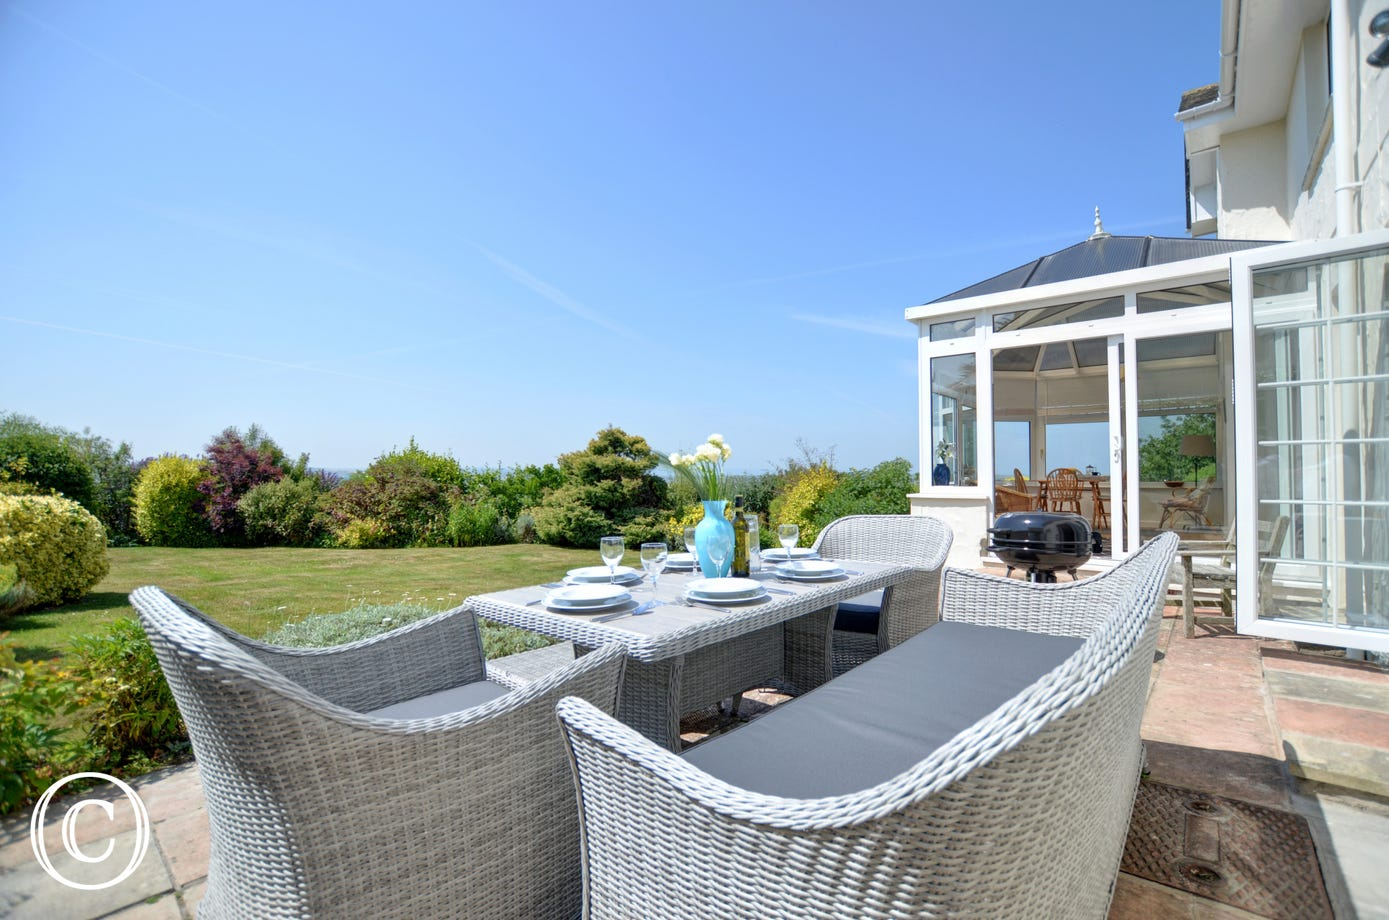 The patio has comfortable garden furniture to relax in whilst enjoying a BBQ